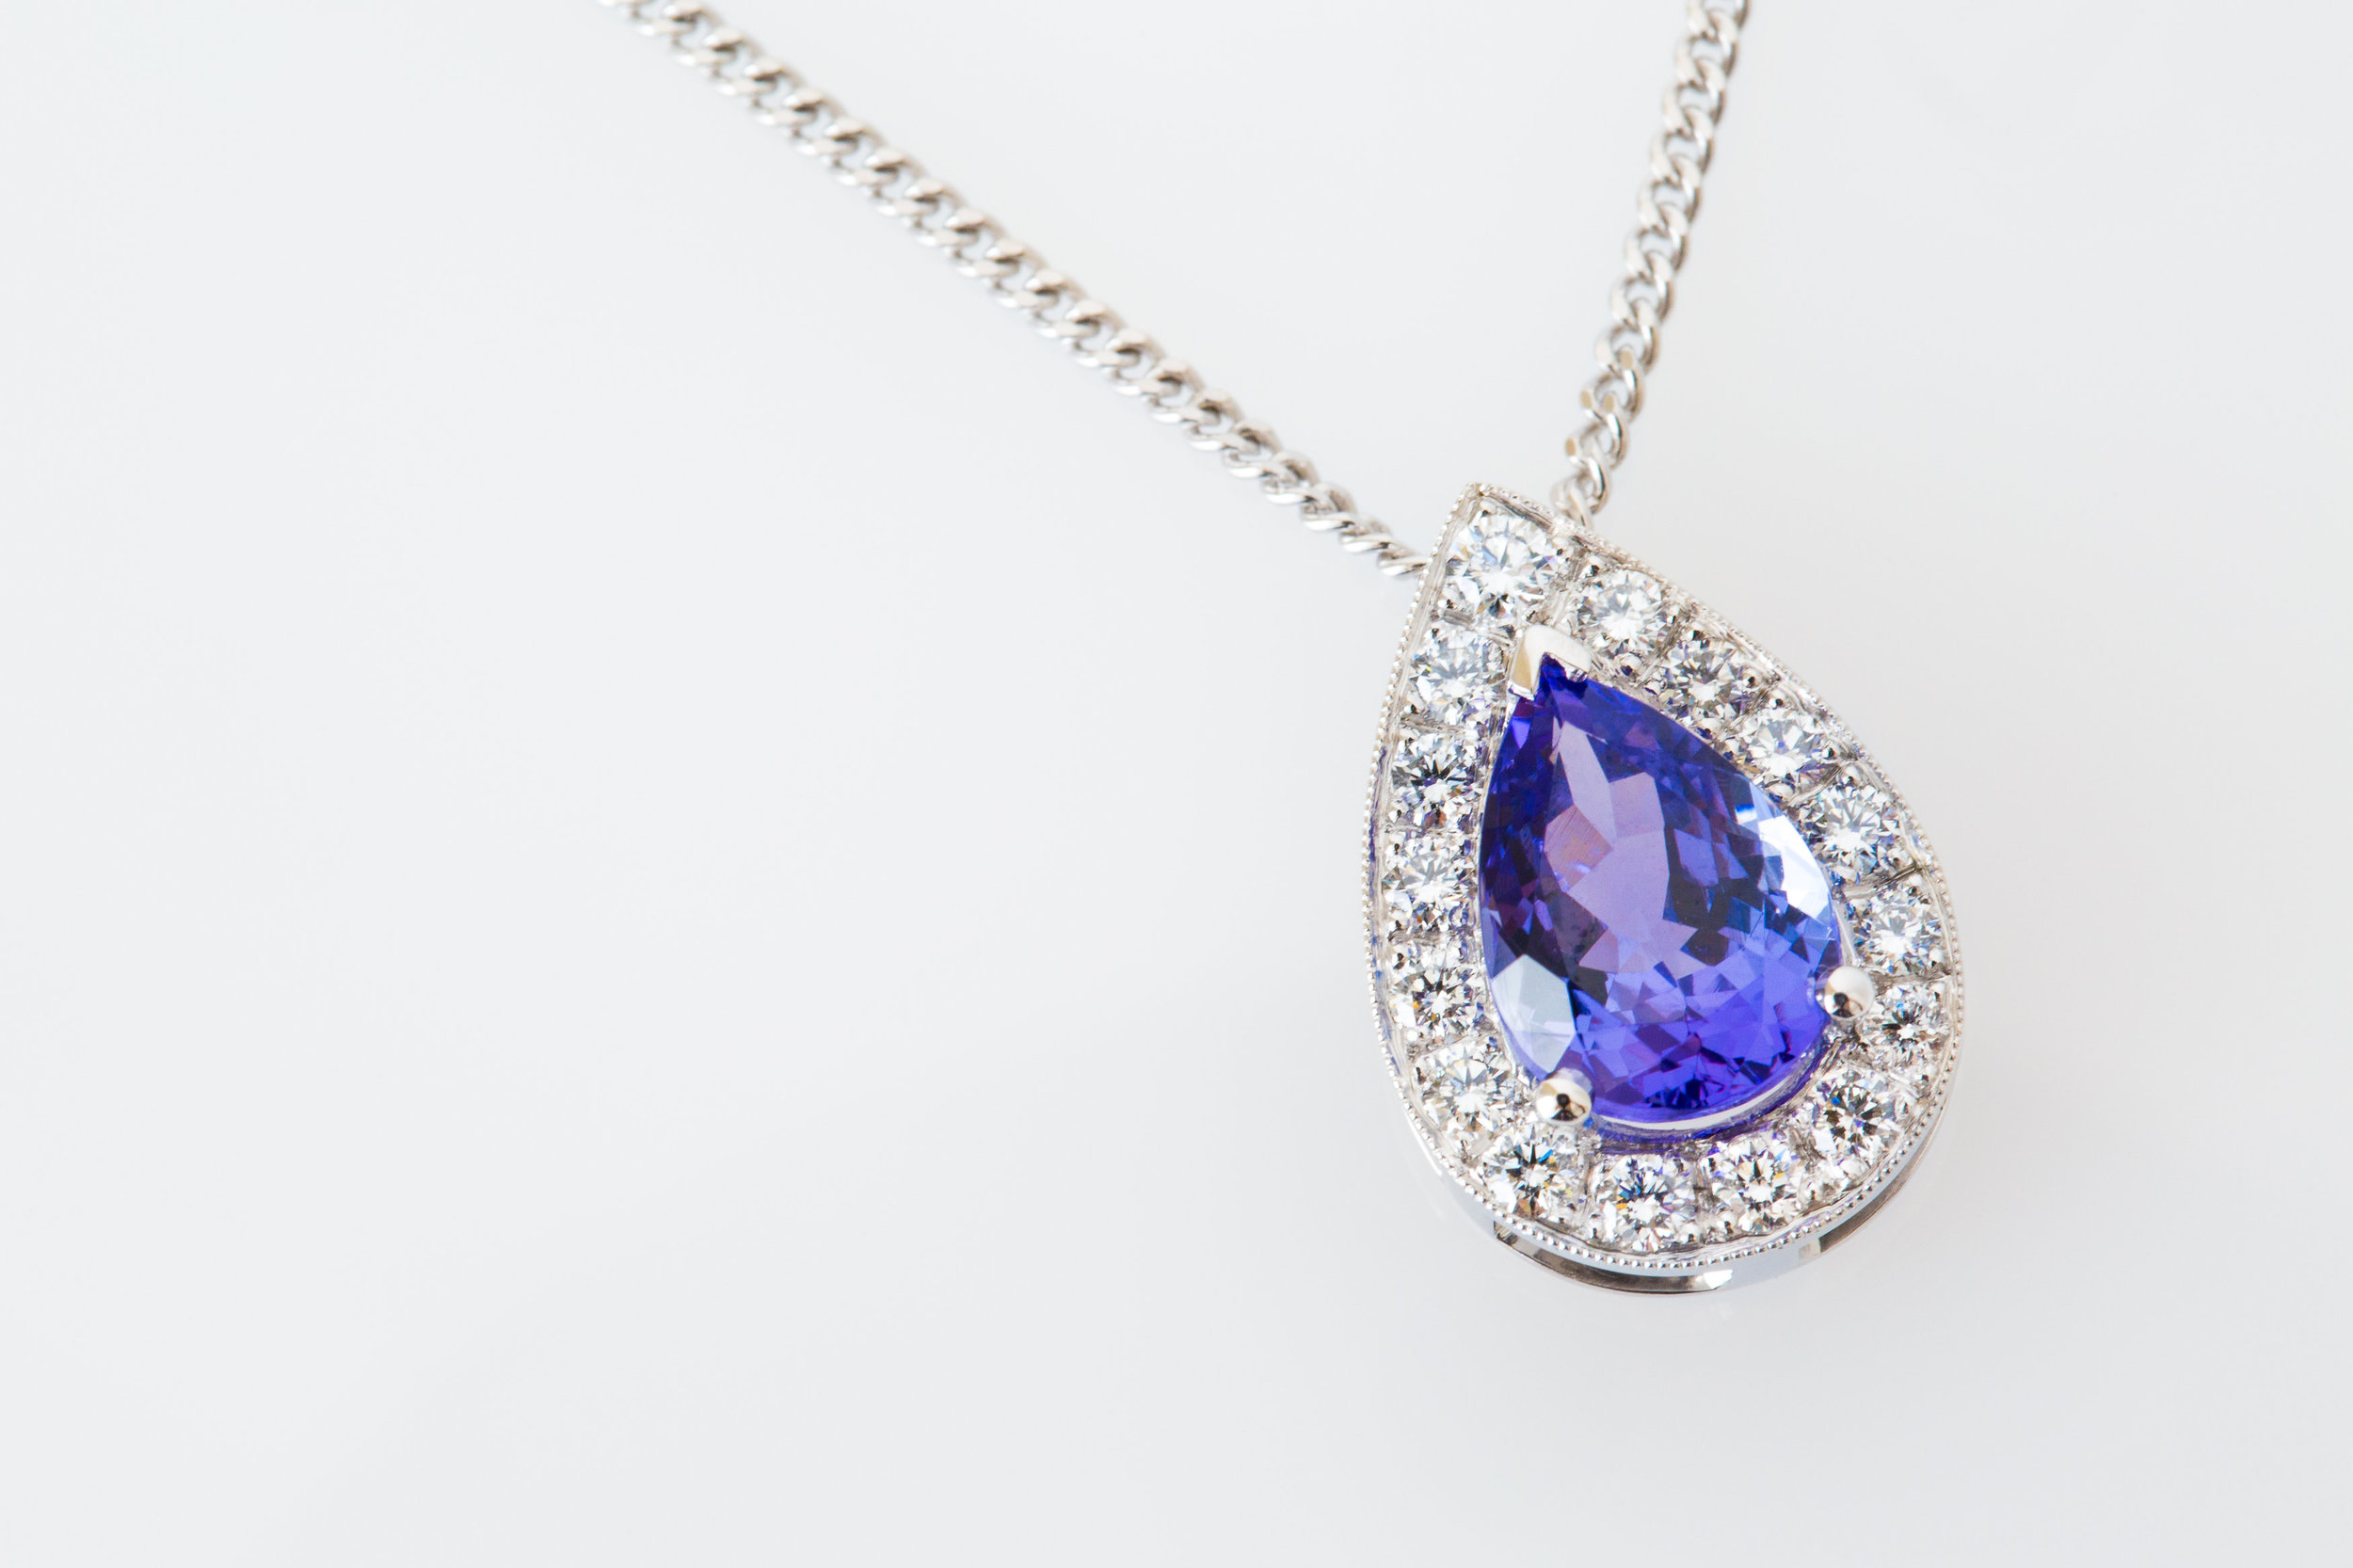 Pendants make a beautiful and thoughtful first anniversary gift, like this magnificent Tanzanite halo piece made for Liz.